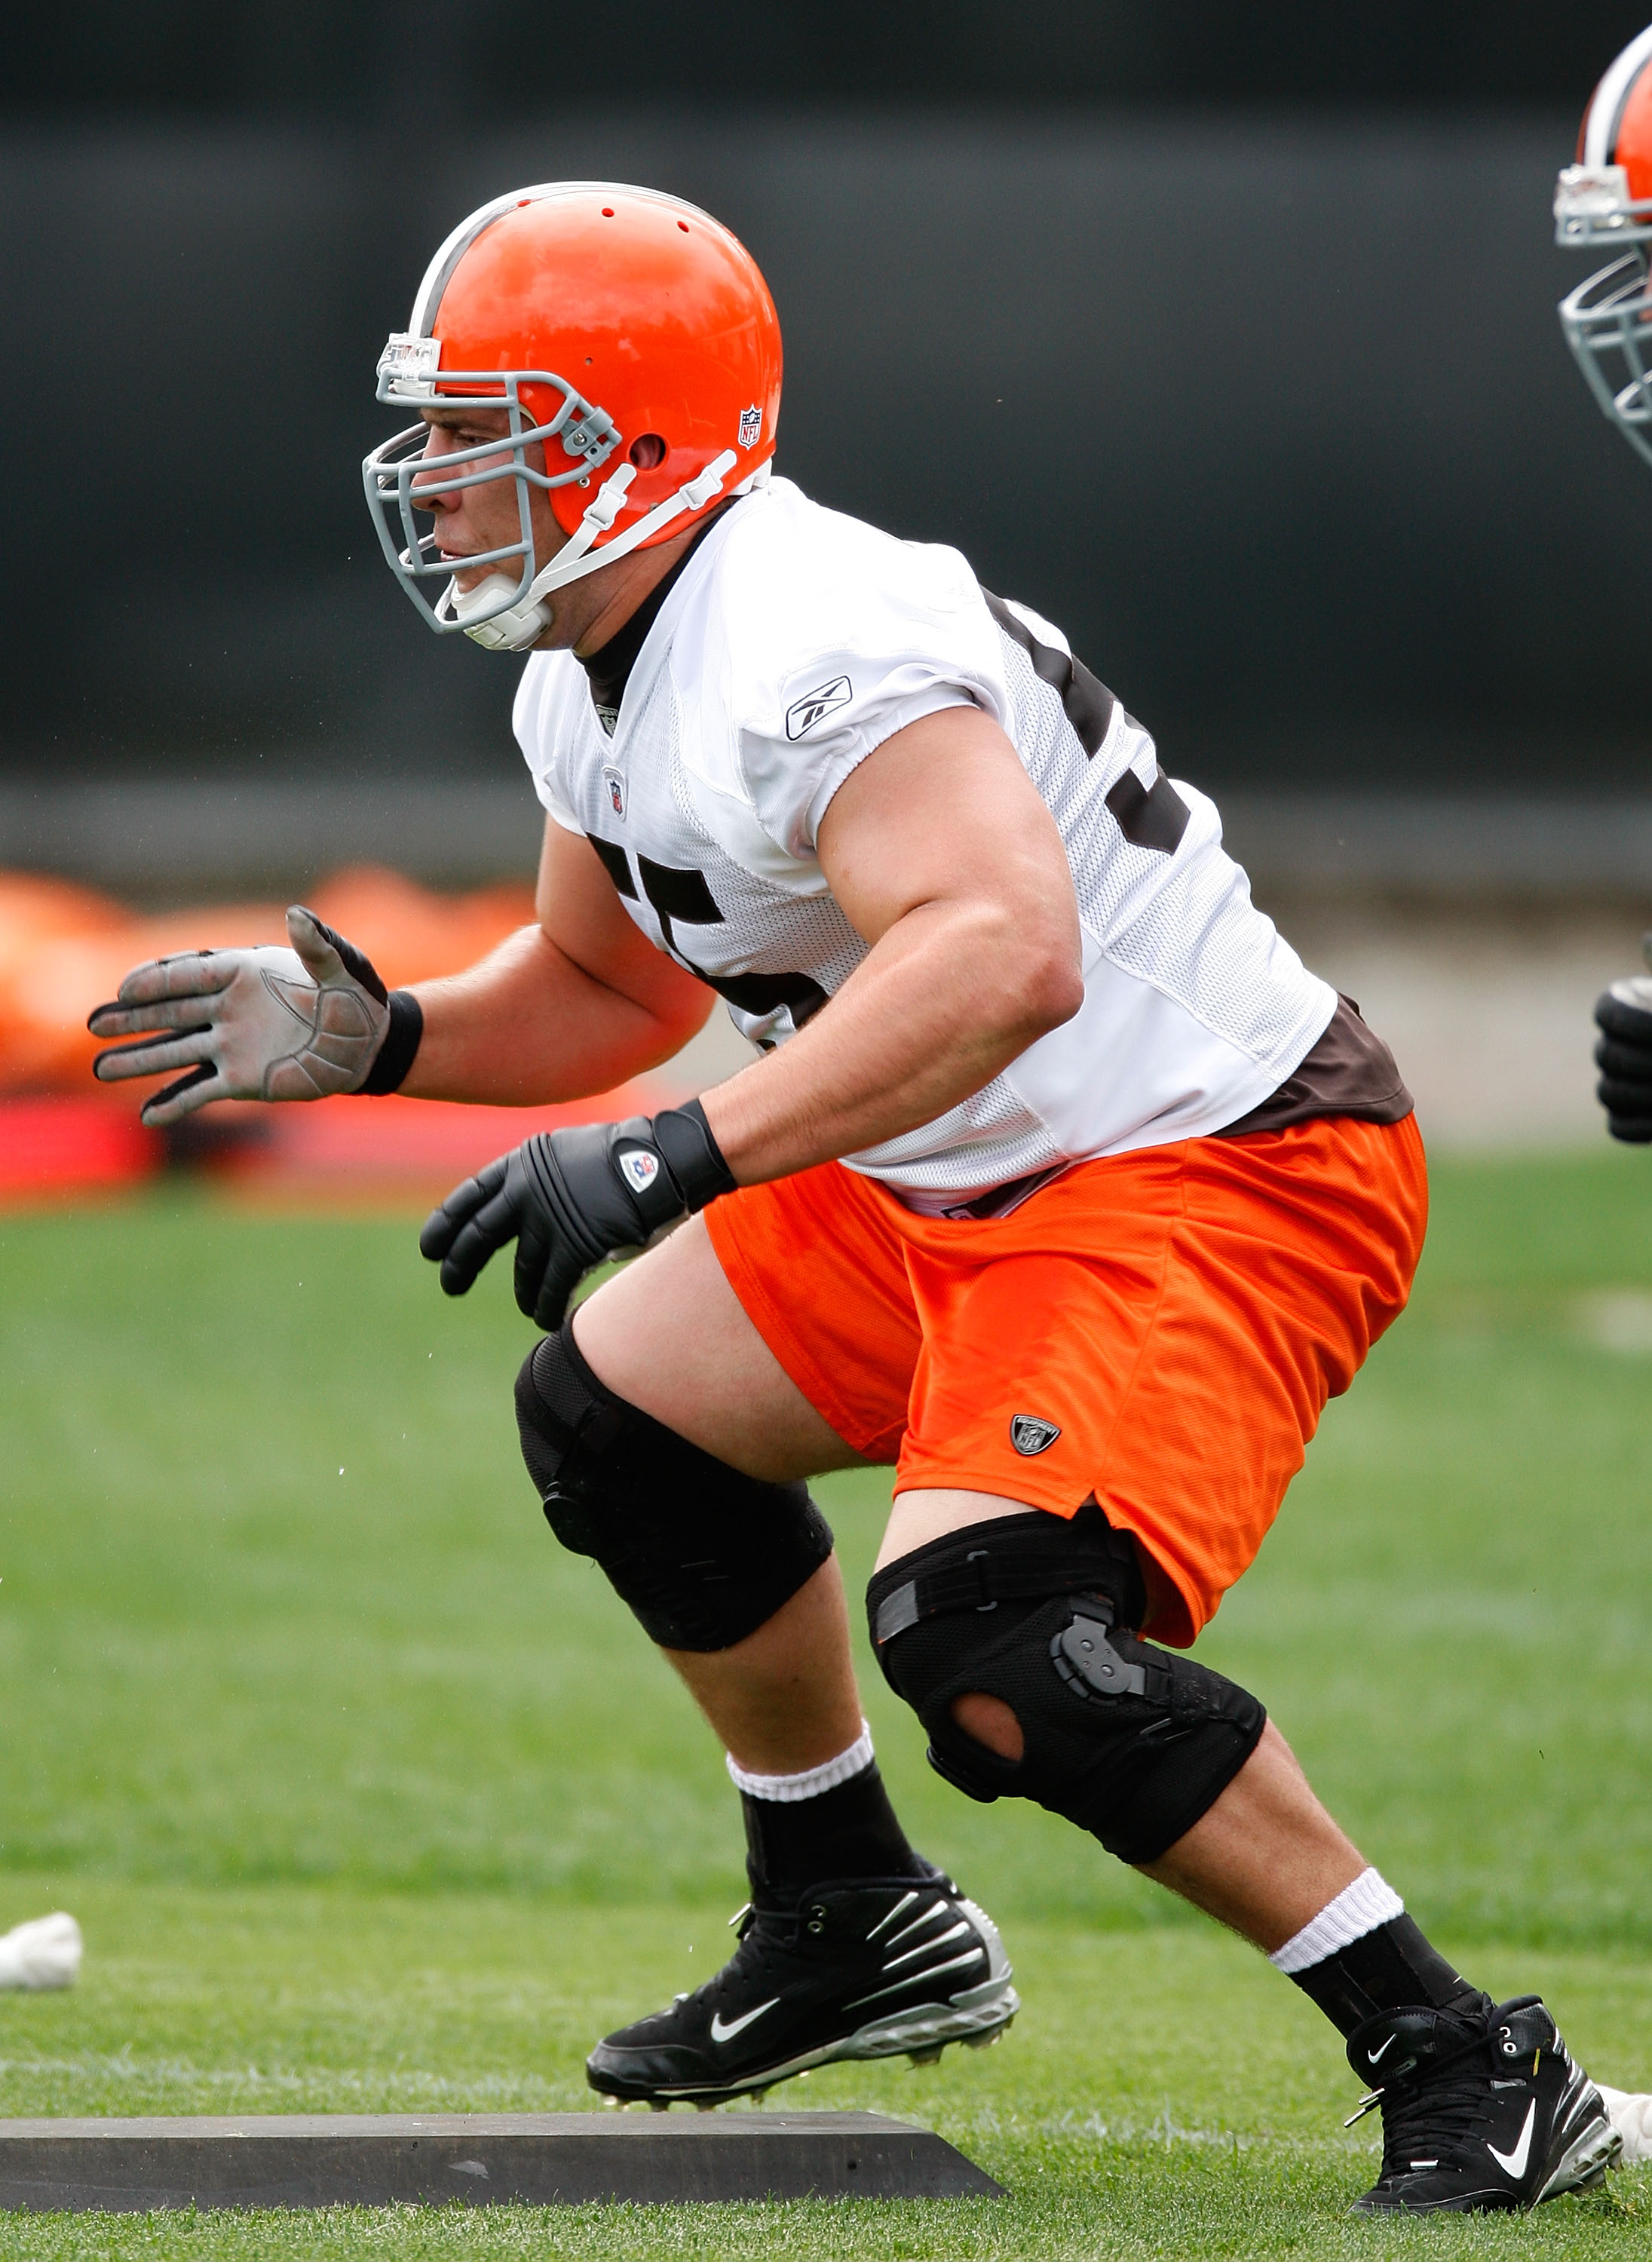 BEREA, OH - MAY 02:  Alex Mack #55 of the Cleveland Browns runs through a drill during rookie mini camp at the Cleveland Browns Training and Administrative Complex on May 2, 2009 in Berea, Ohio.  (Photo by Gregory Shamus/Getty Images)